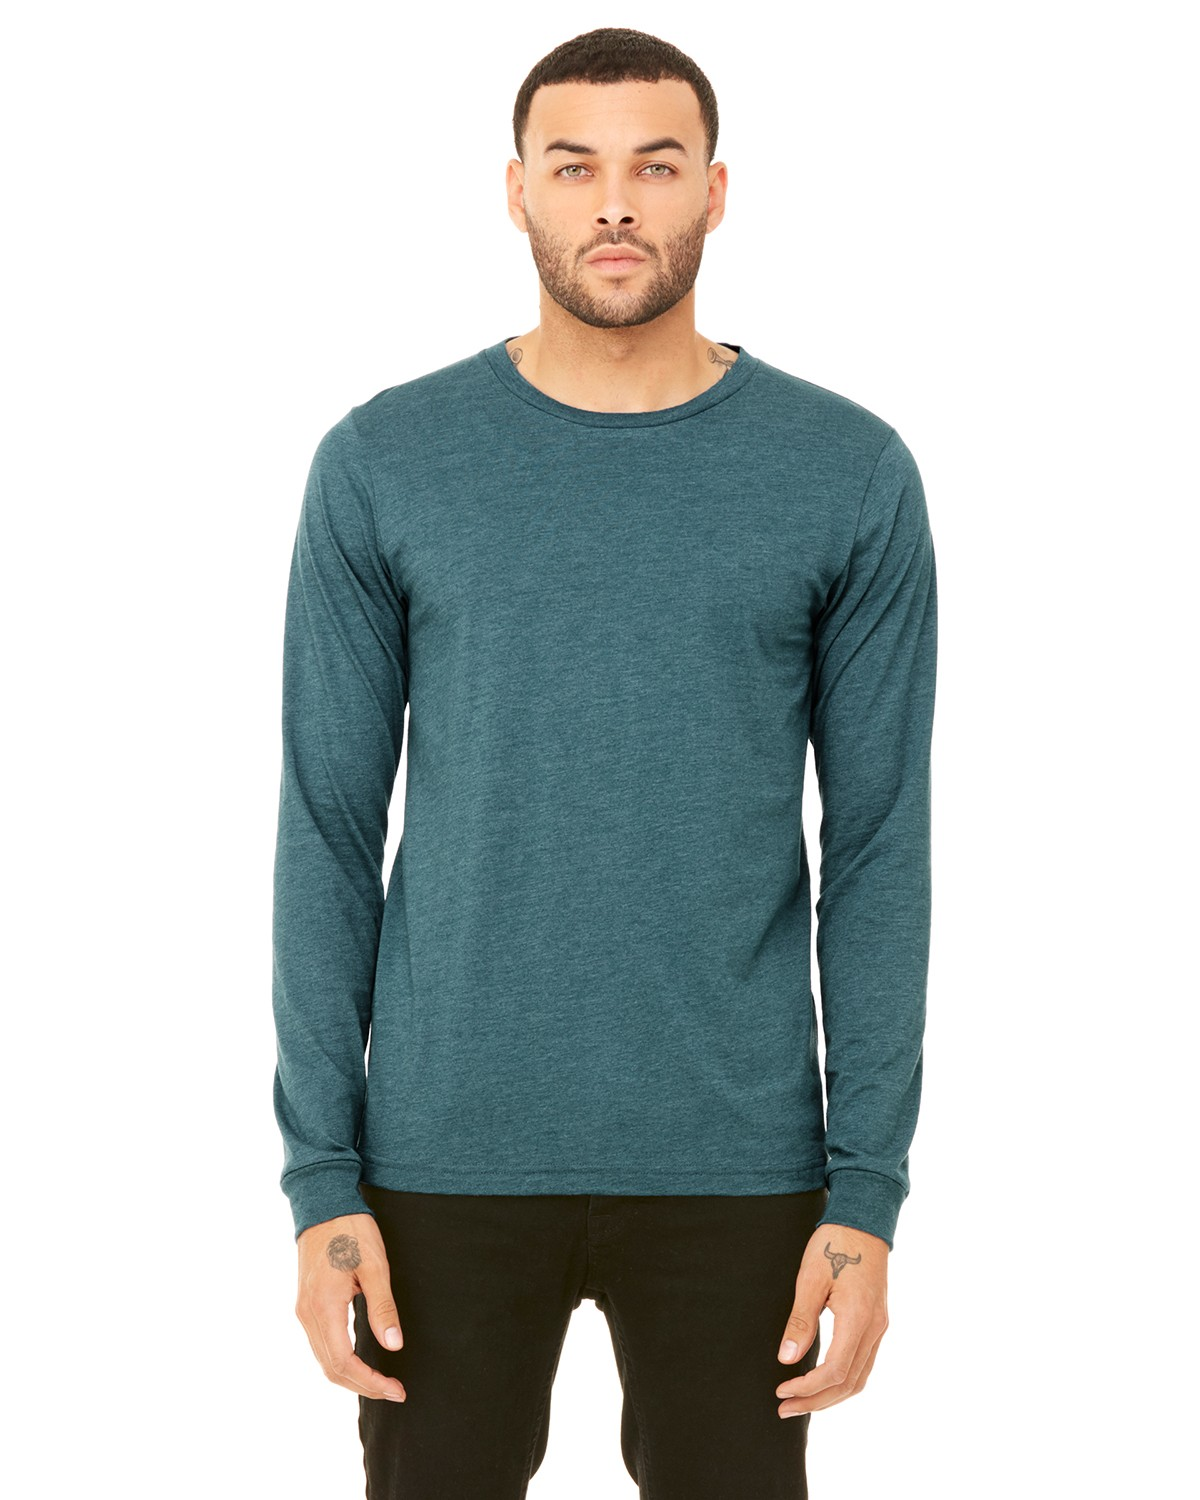 3501 Bella + Canvas HTHR DEEP TEAL